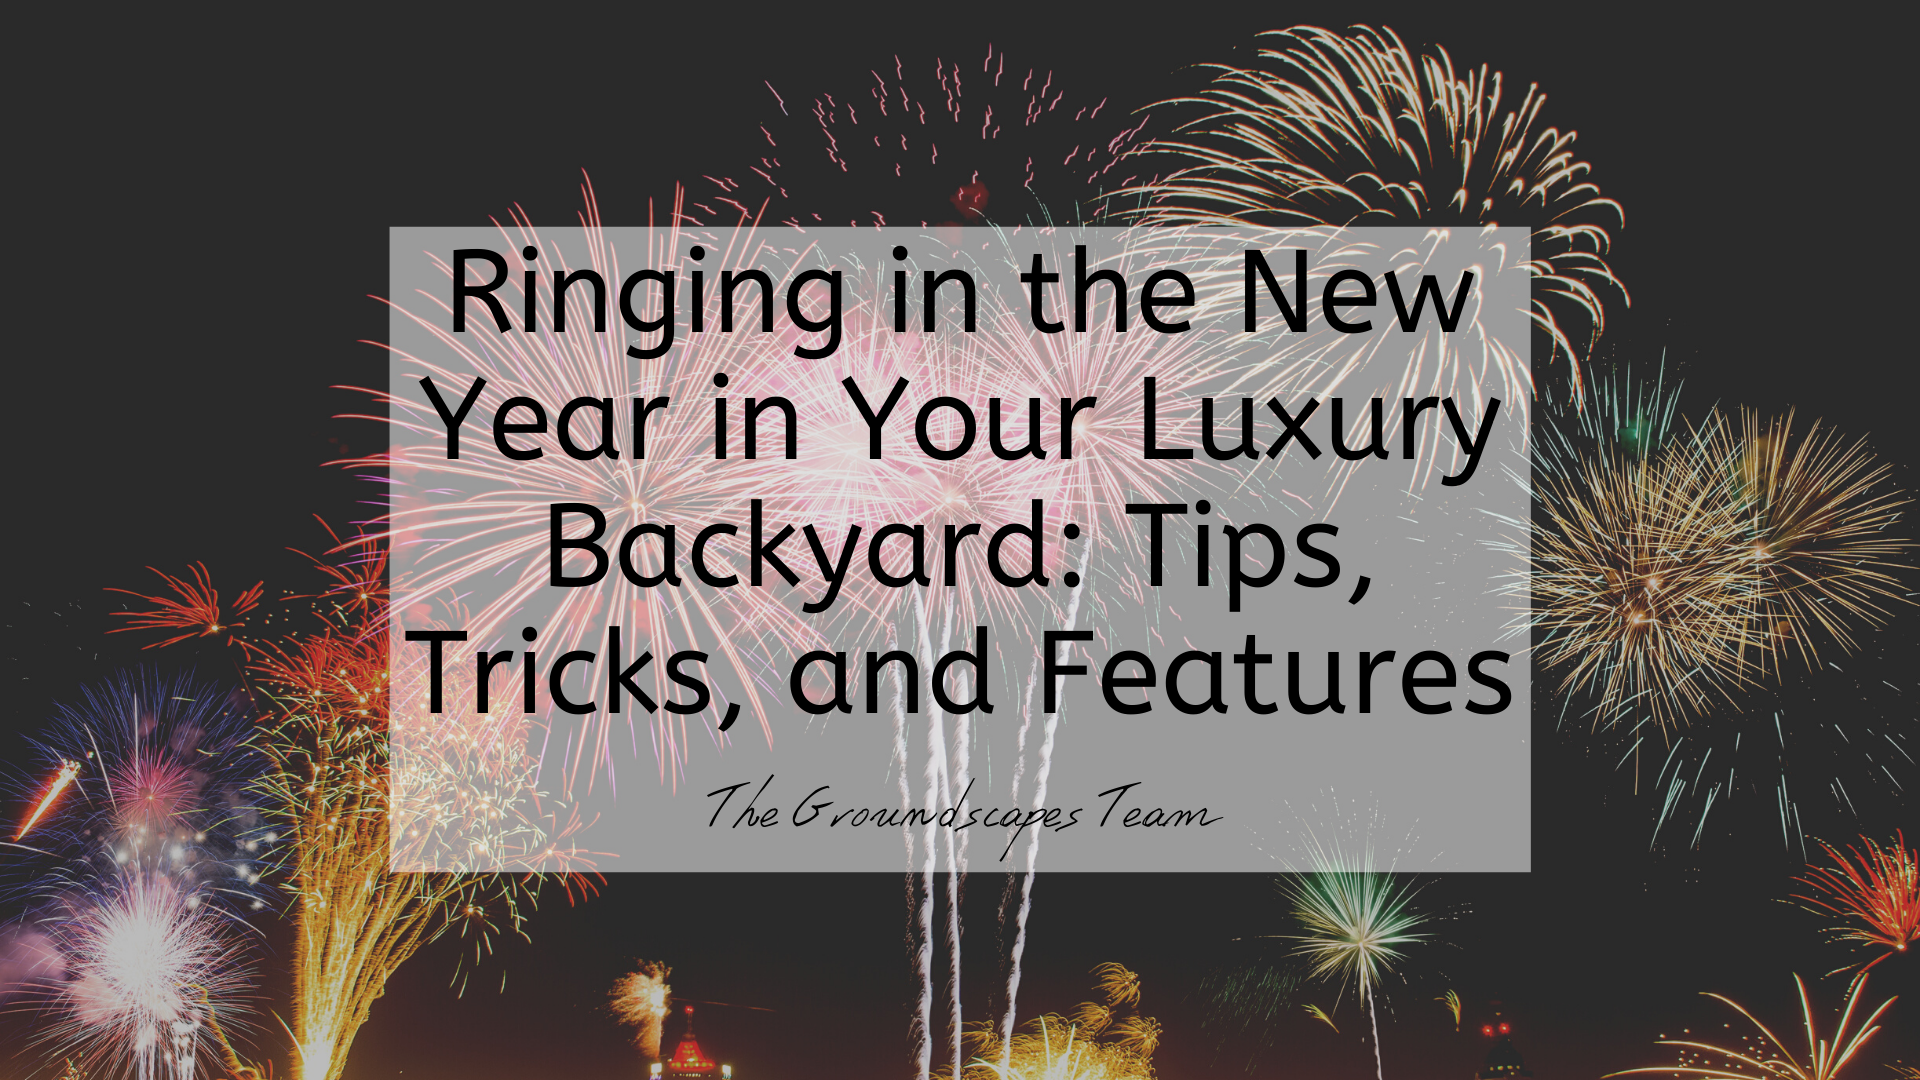 Ringing in the New Year in Your Luxury Backyard: Tips, Tricks, and Features